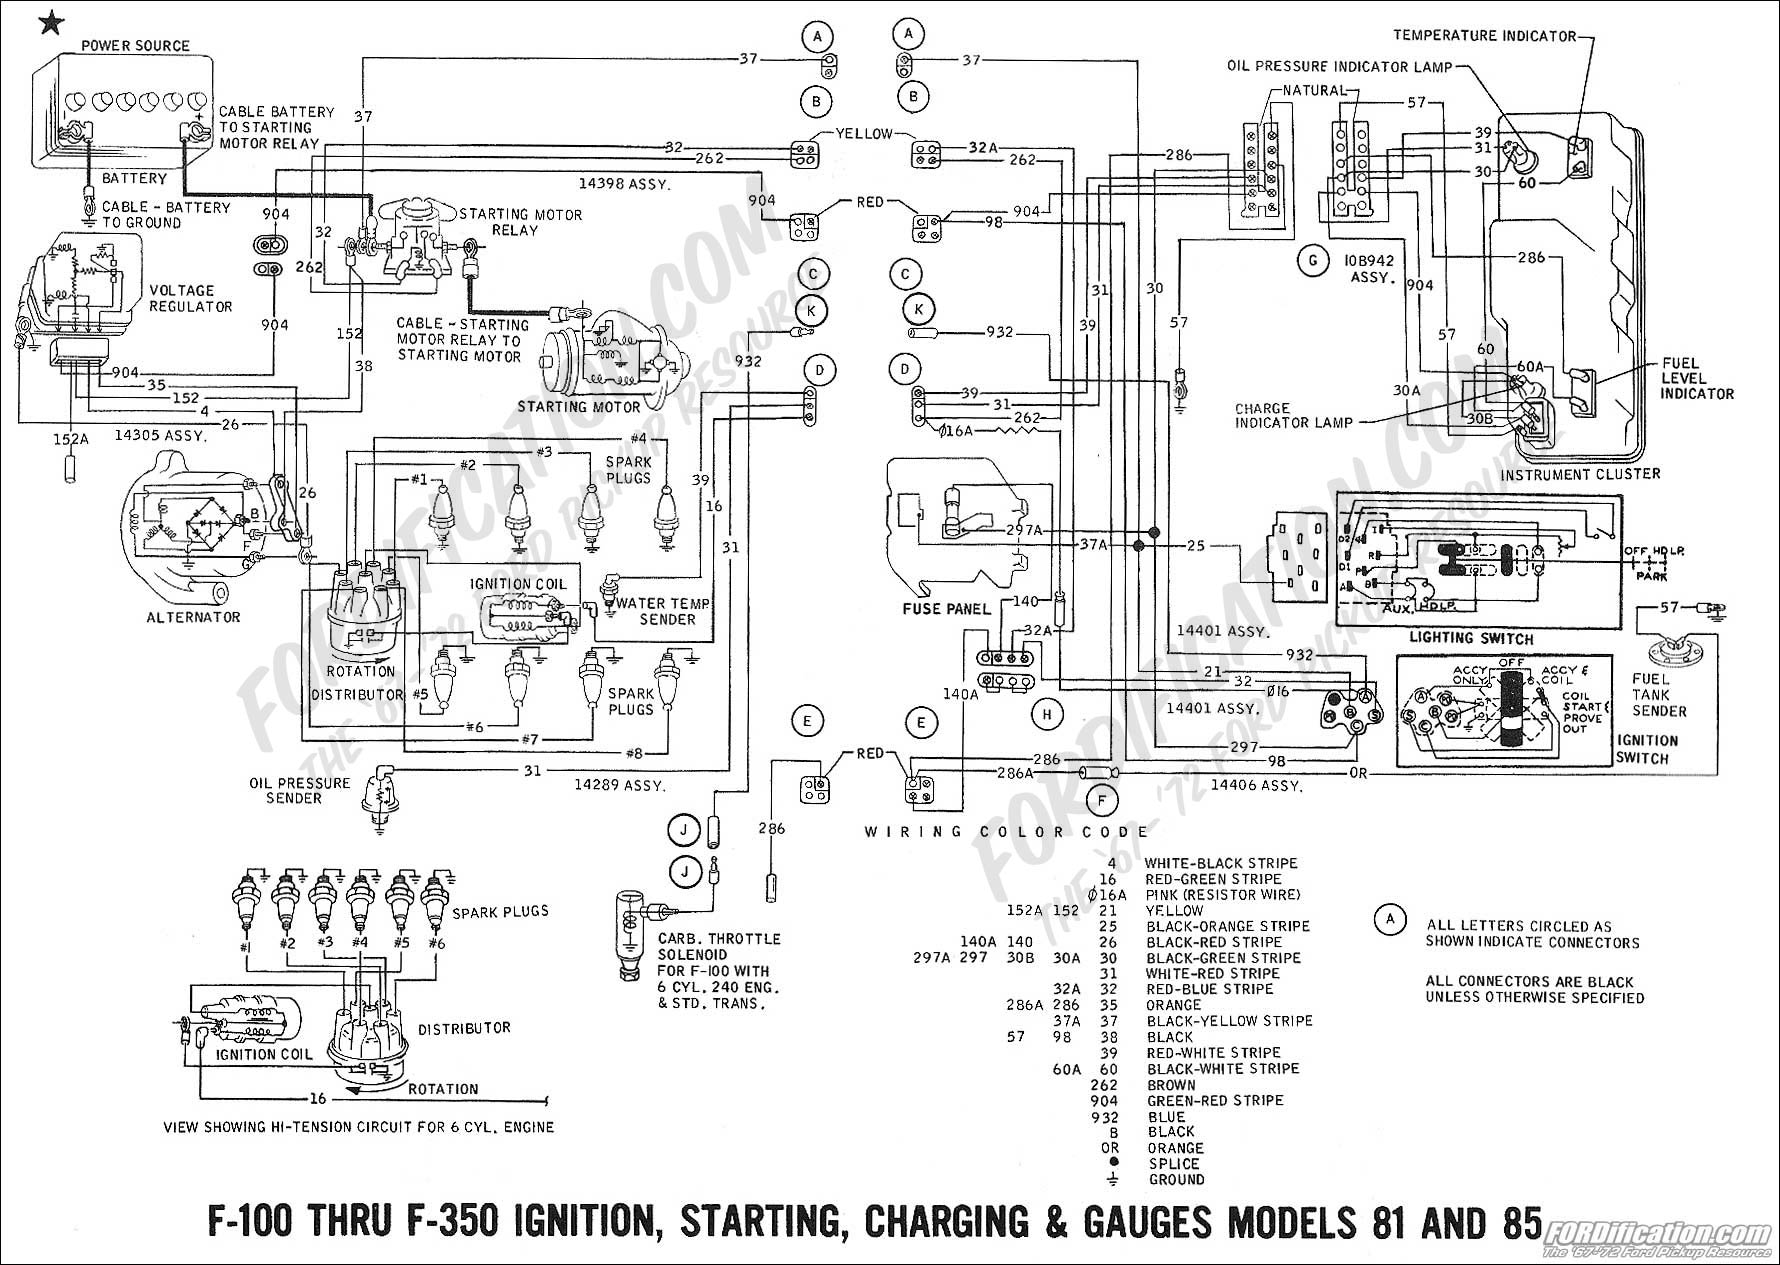 ford truck technical drawings and schematics section h pin by bruce schena on f100 resources